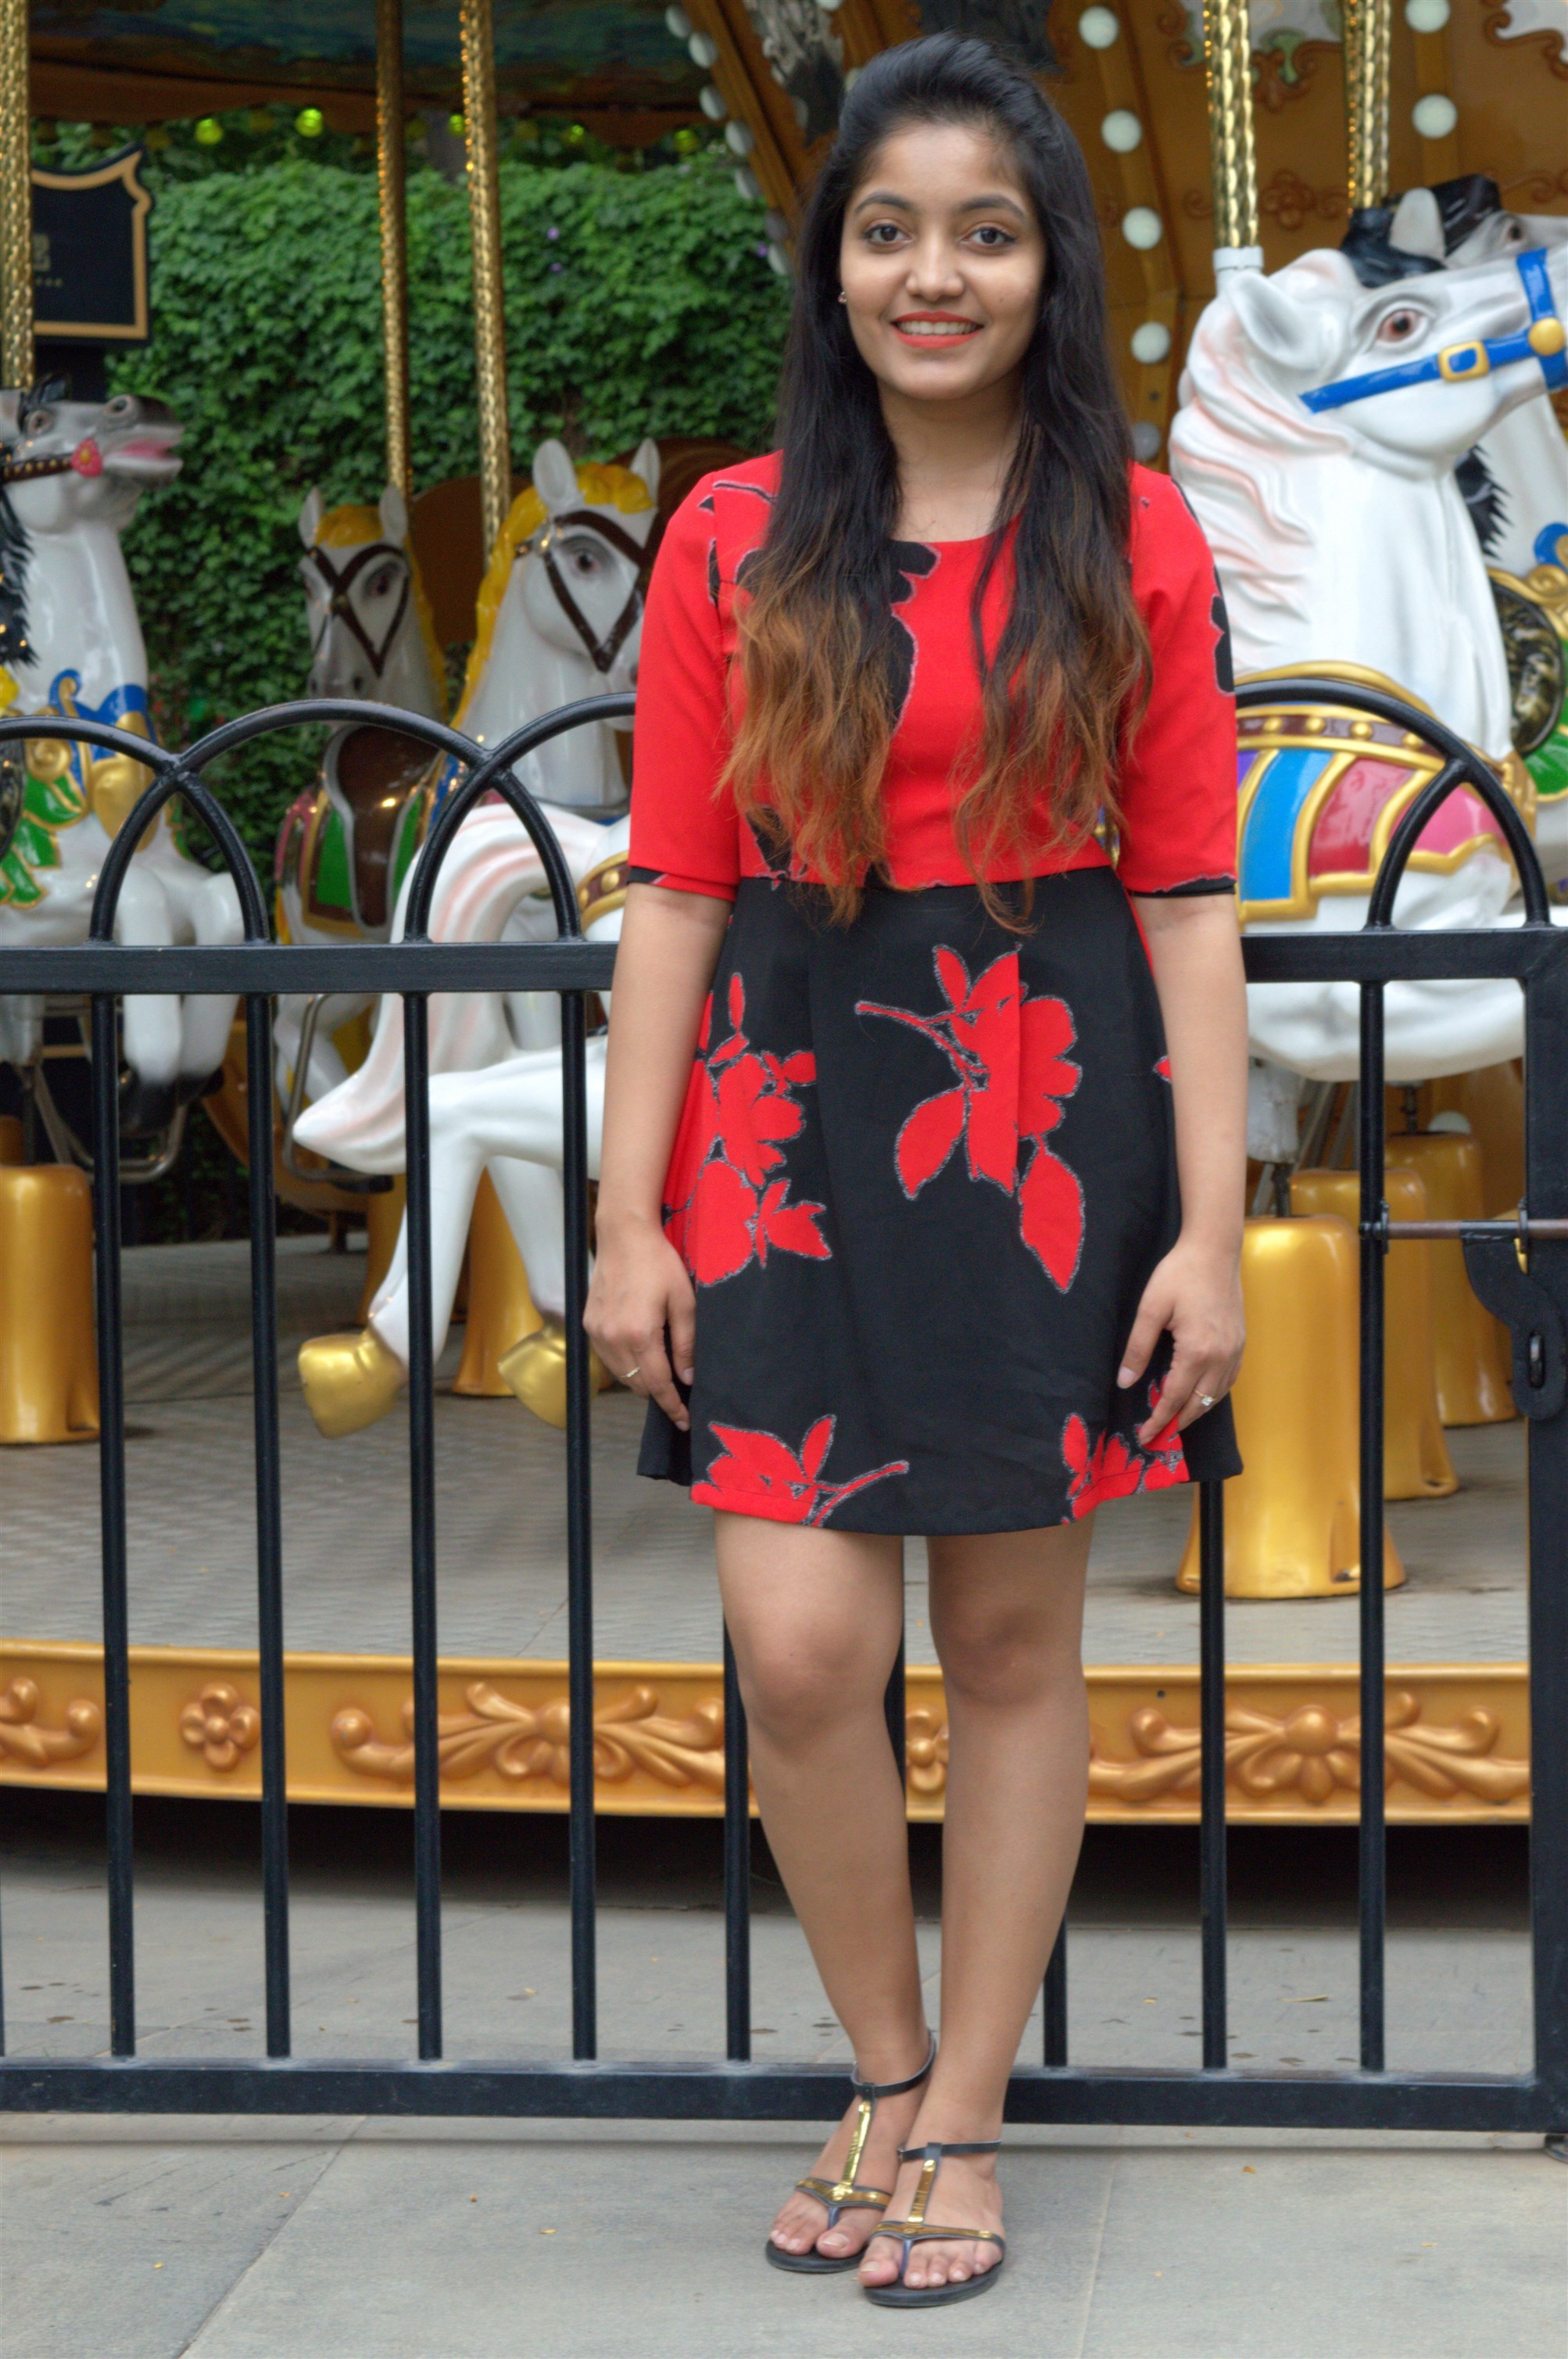 skater dress how to style during monsoon the jeromy diaries outfit ideas x american swan